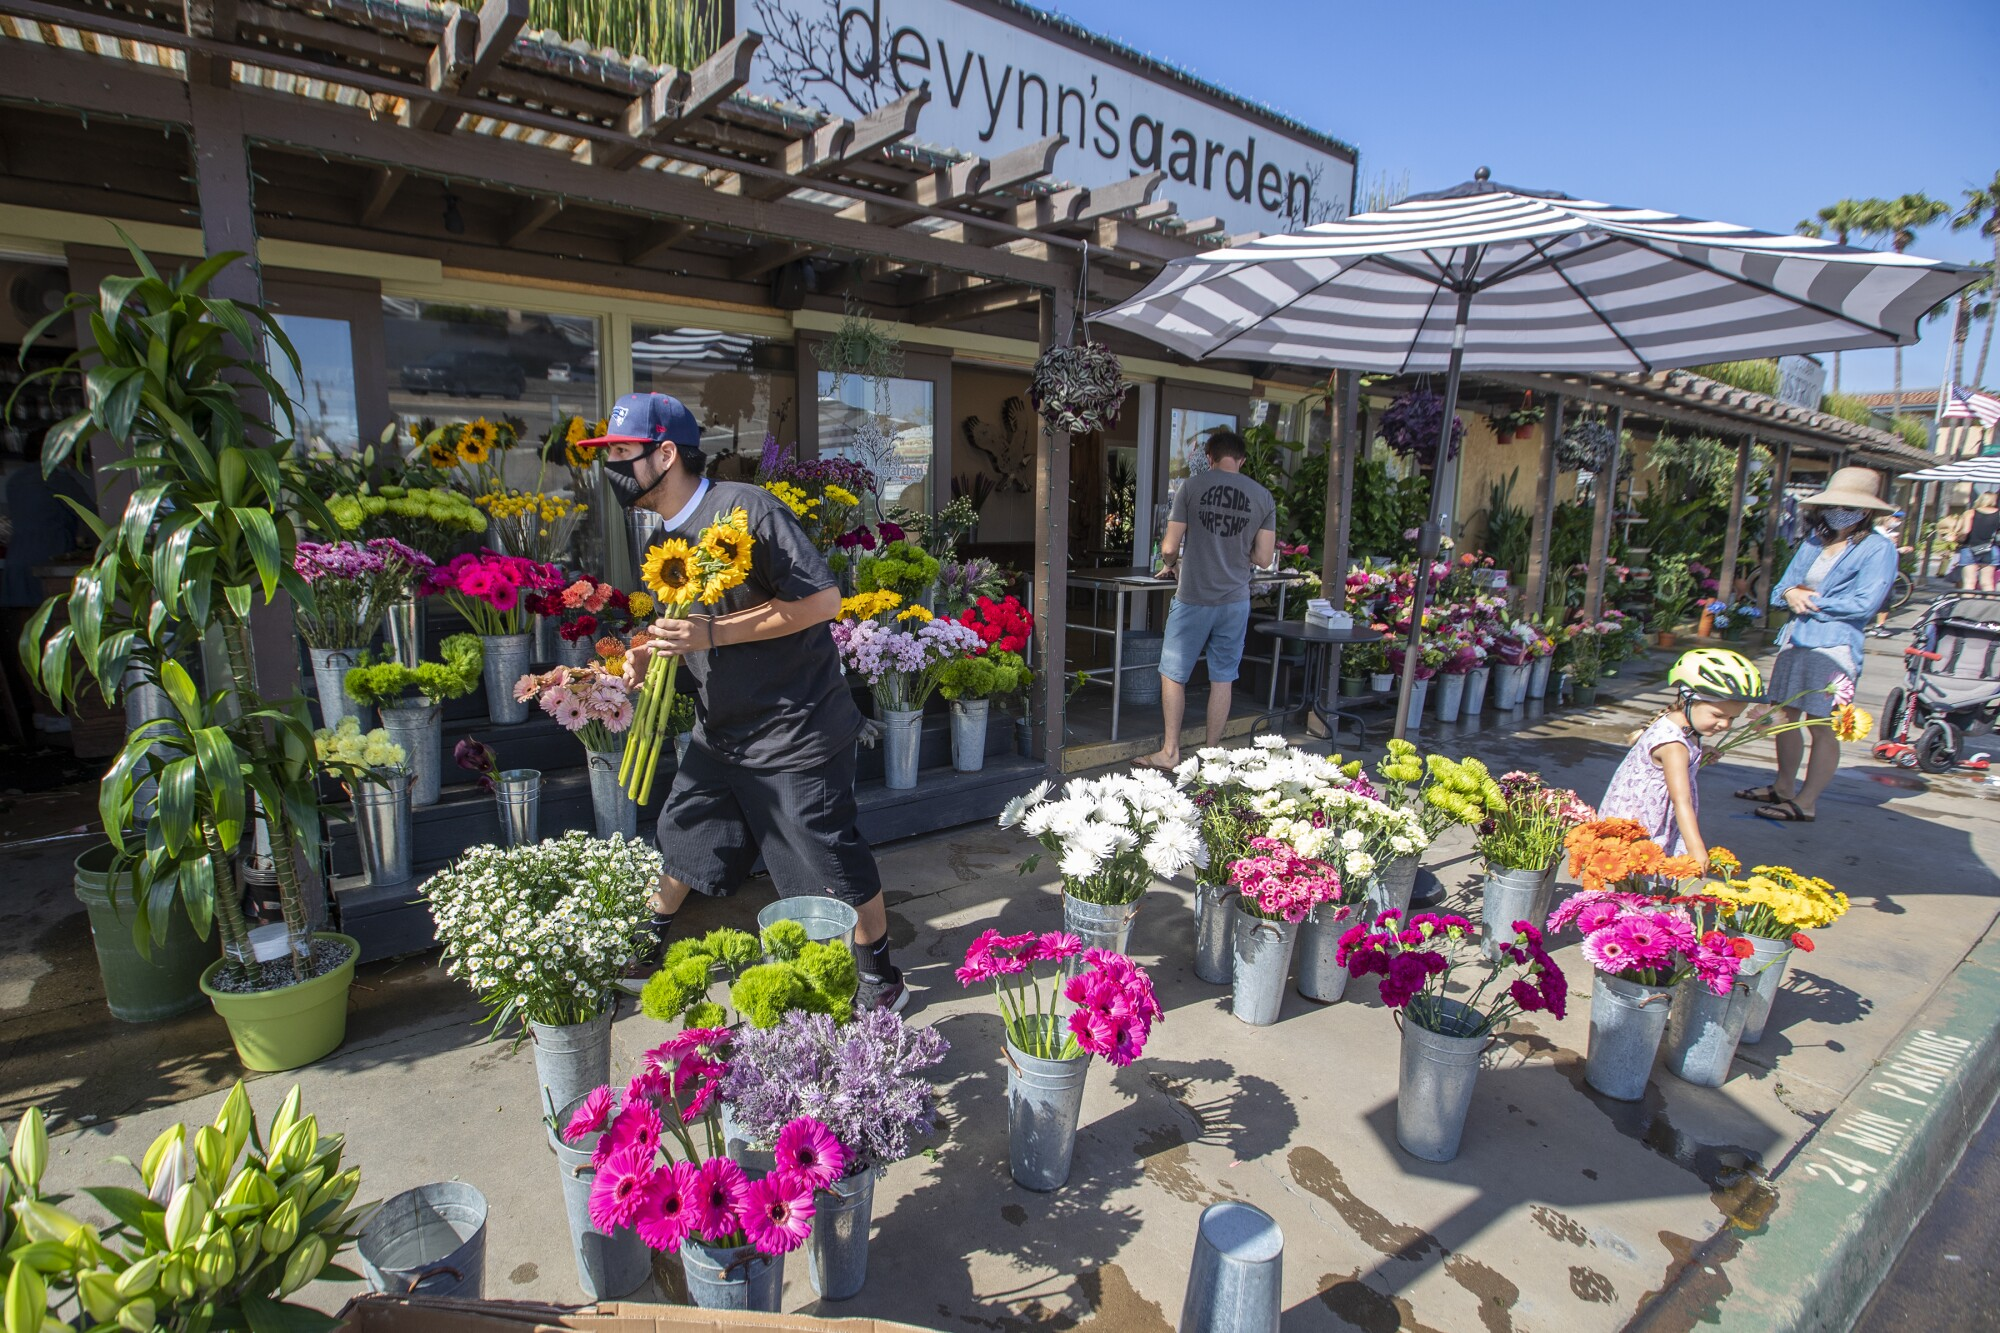 Employee Moy Ramirez, left, places flowers on display as Christina Dagle, right, and her daughter, Eleanor Eades, 4, buy flowers for a friend from Devynn's Garden in Seal Beach on Friday.